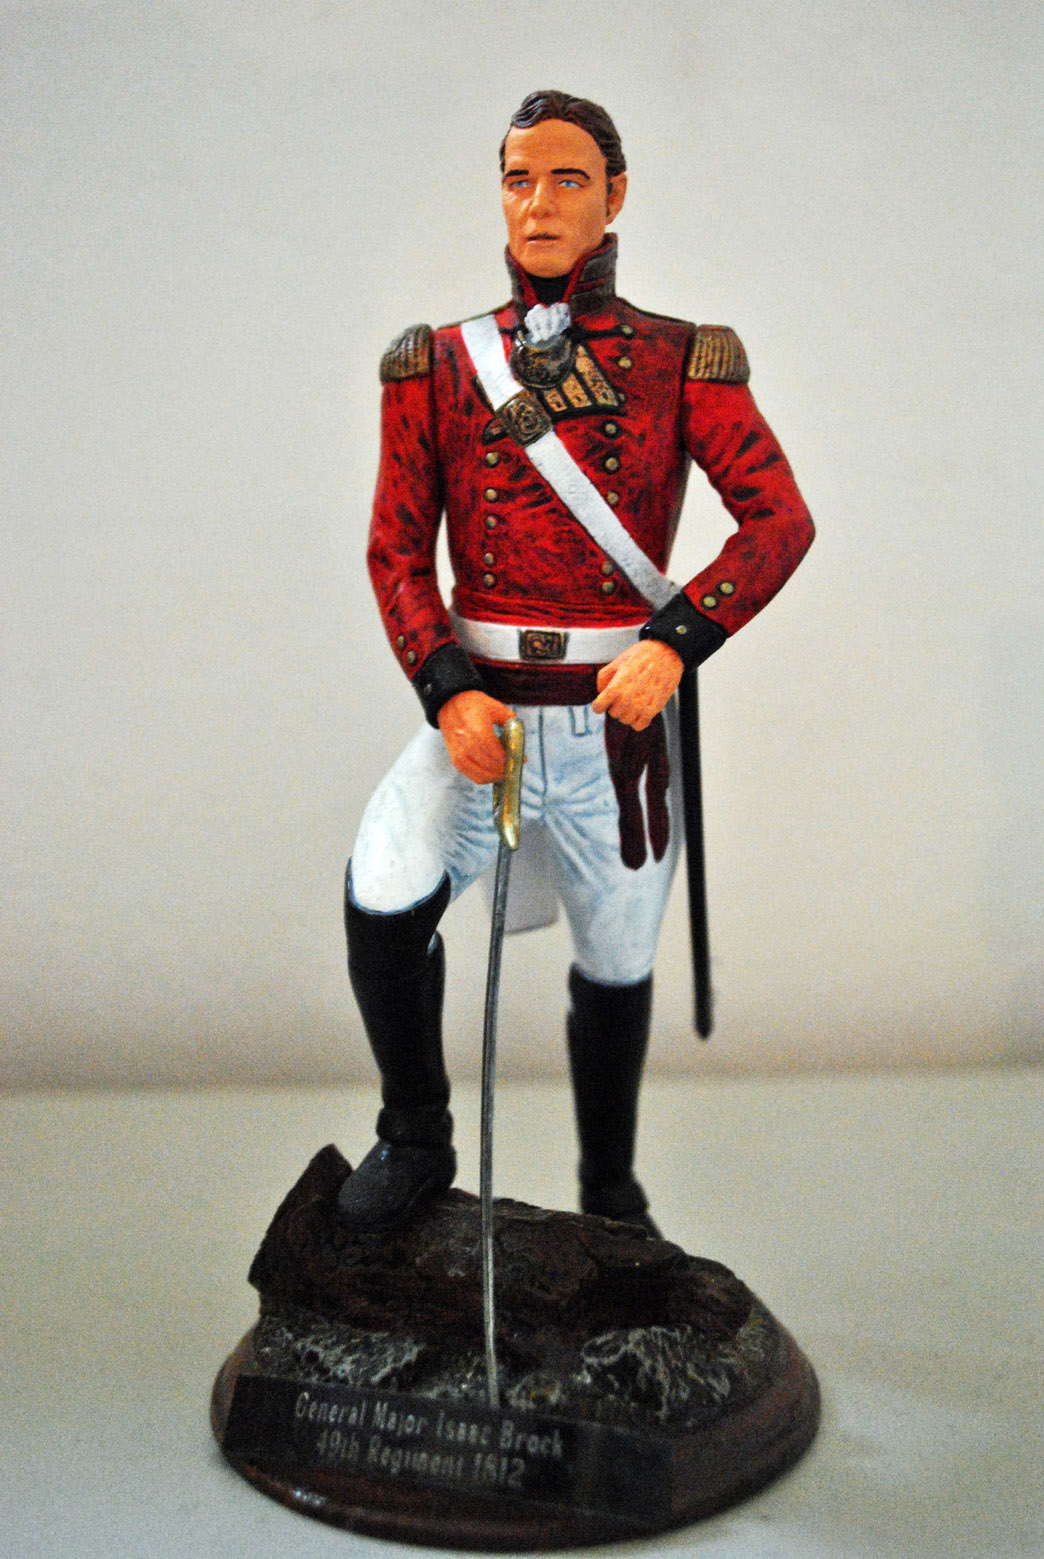 1812-Gen.Major-Isaac-Brock.-49th-Regiment.-Canada